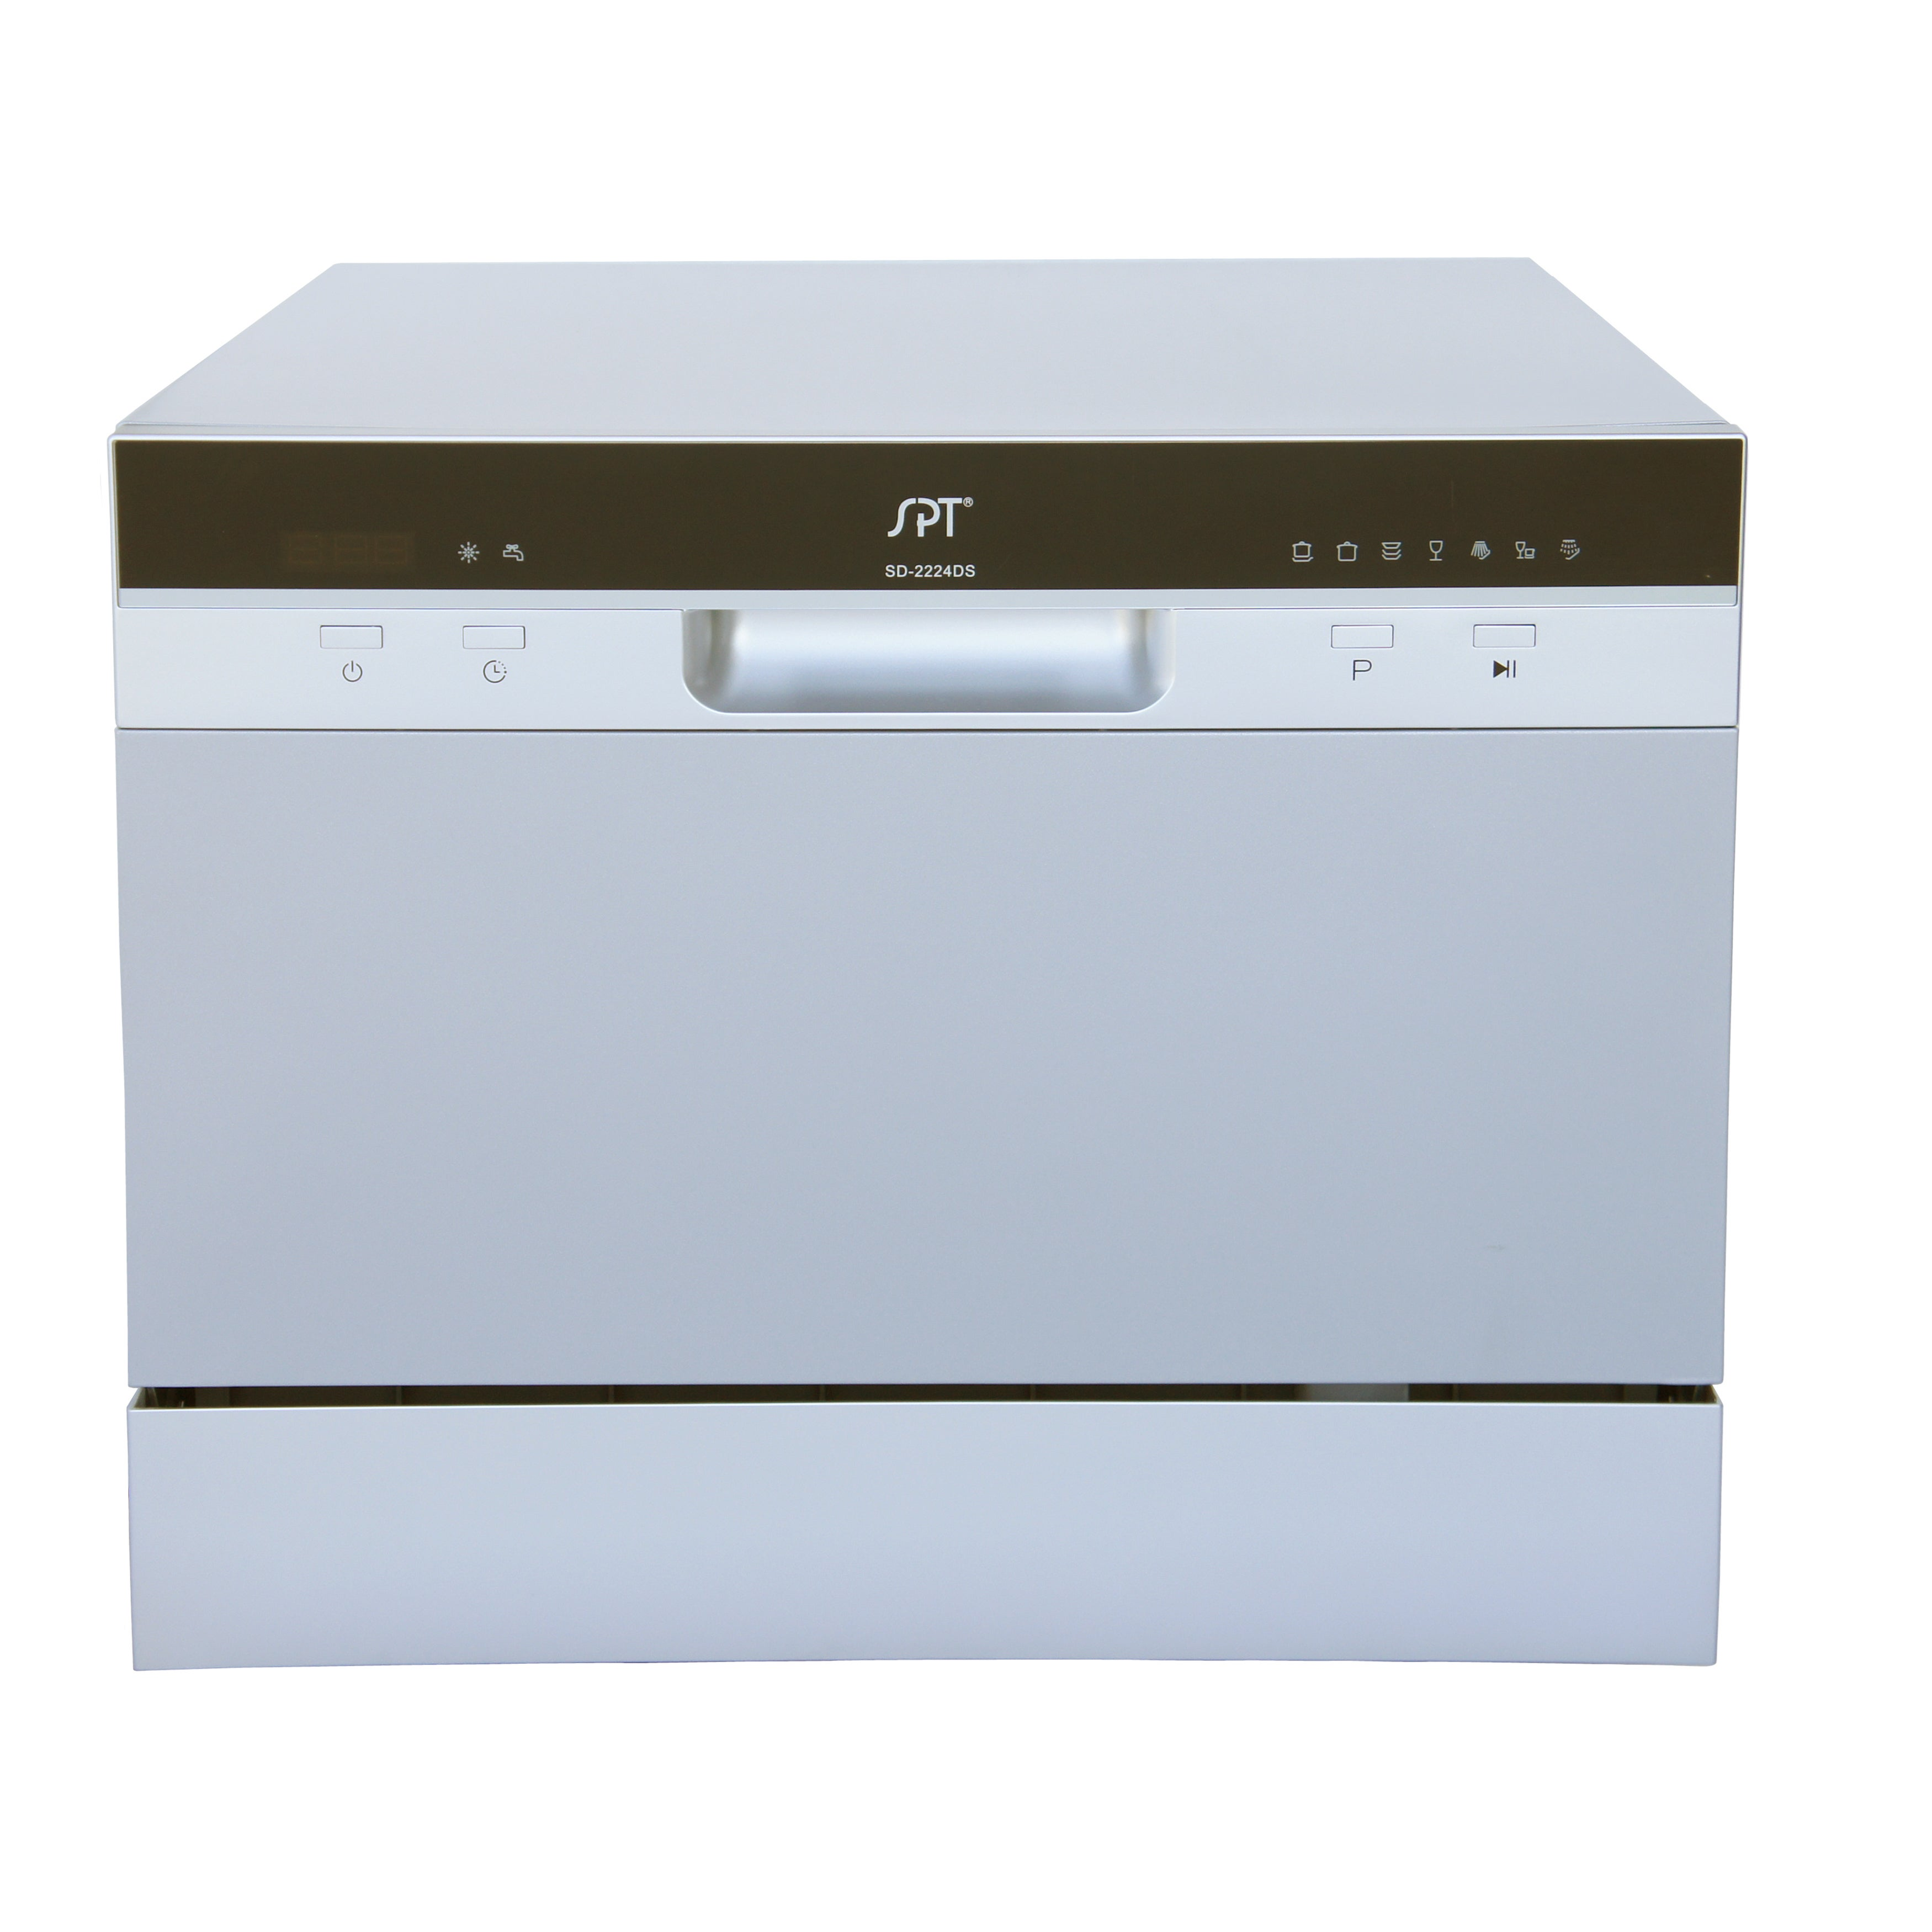 SPT 6 Place Setting Silver Countertop Dishwasher with Del...